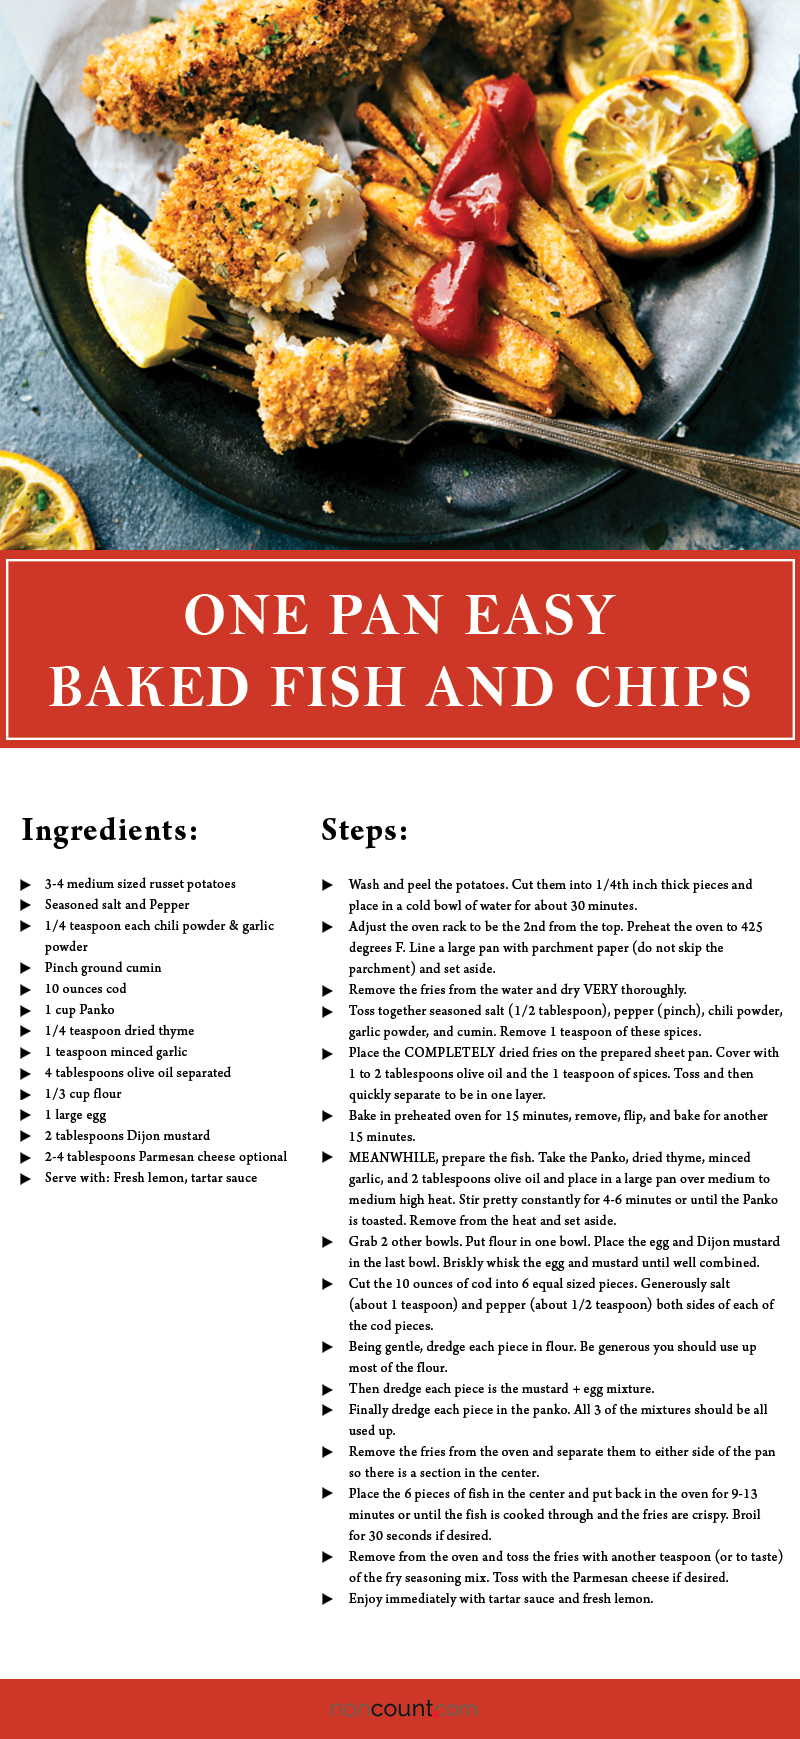 One Pan Easy Baked Fish and Chips Seafood Recipe Detailed Image